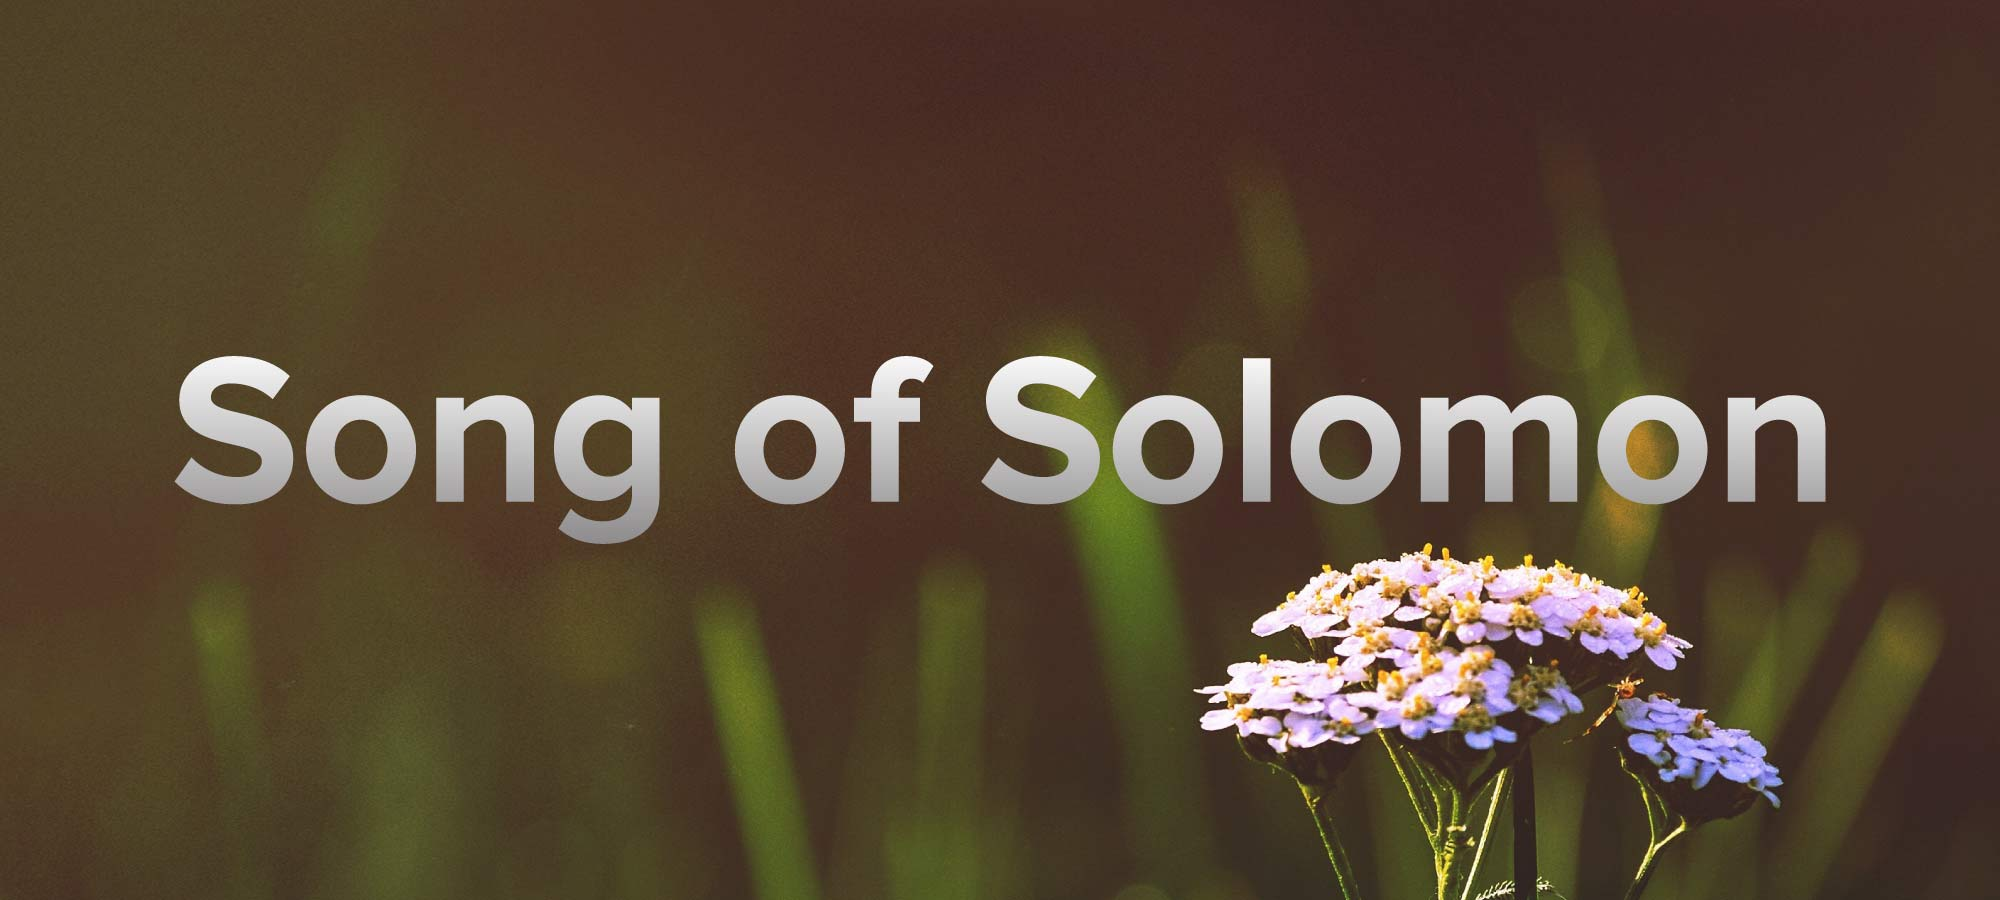 Song-Of-Solomon.jpg